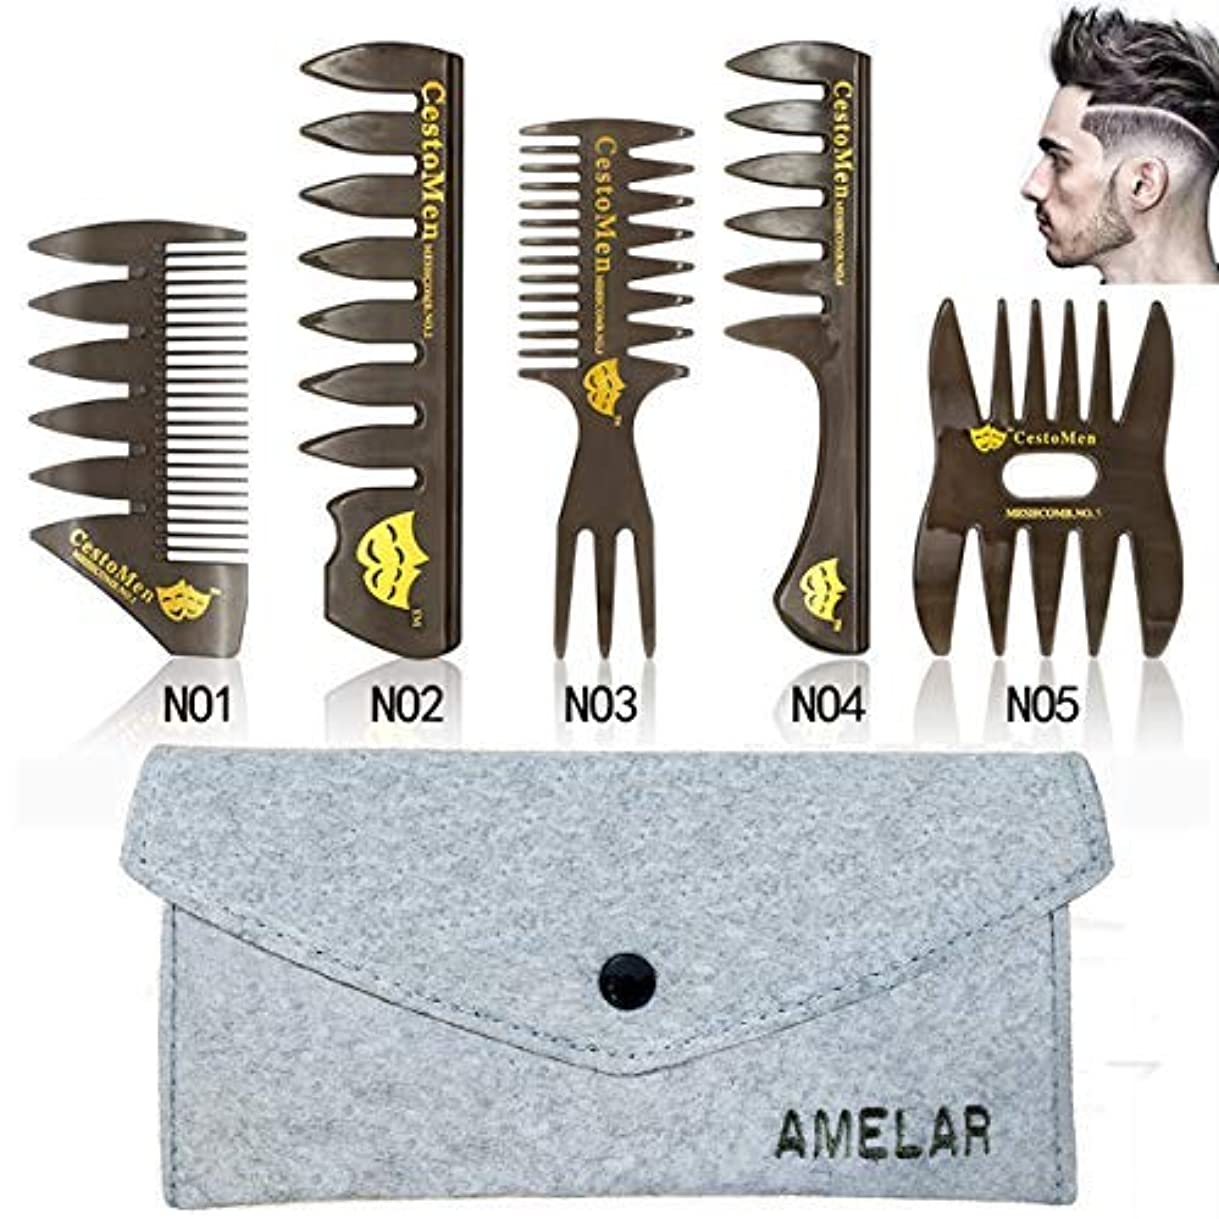 家畜付けるボリューム6 PCS Hair Comb Styling Set Barber Hairstylist Accessories,Professional Shaping & Wet Pick Barber Brush Tools,...